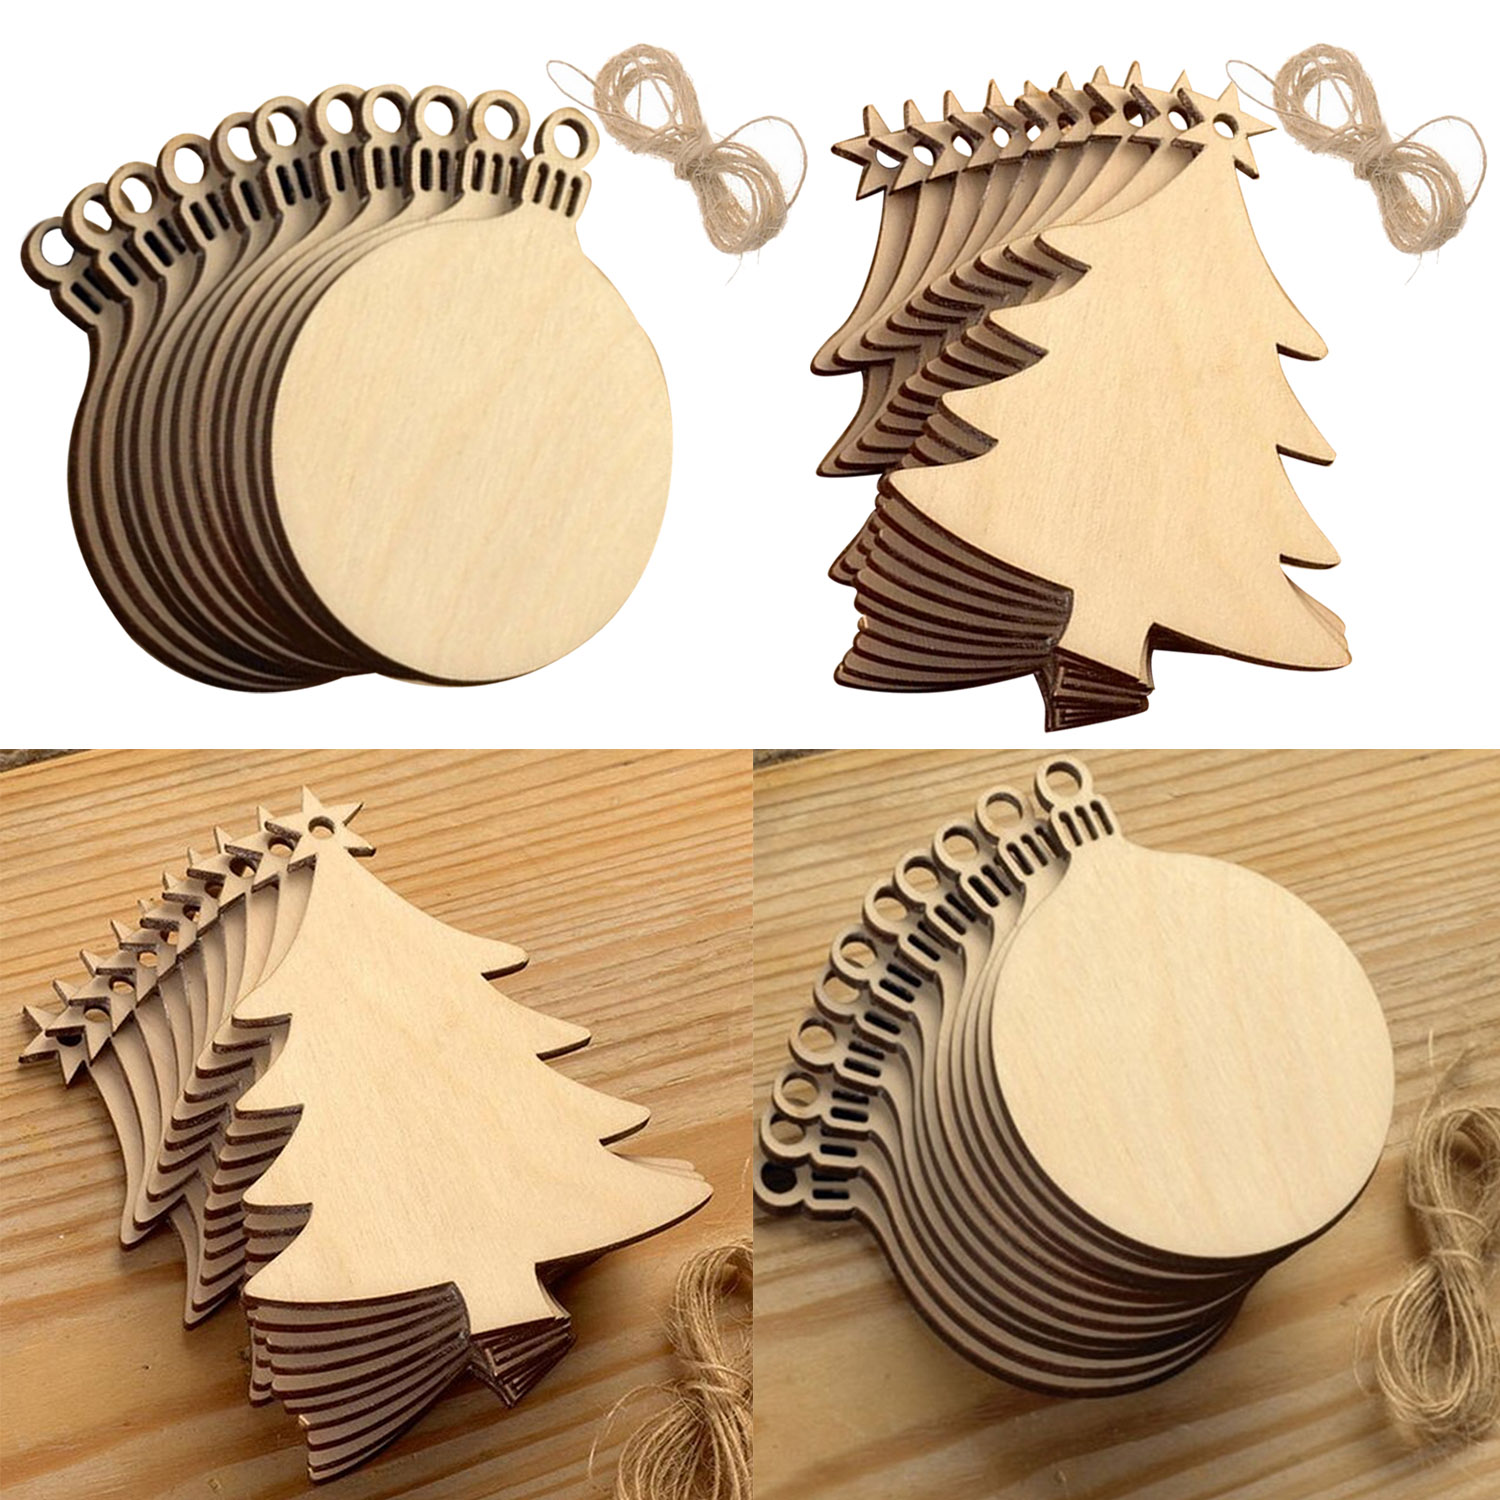 10Pcs Fashion Merry Christmas Tree Wooden DIY Carft Toys Gifts Hanging Decorations Ornaments Home Shop Mall Party Cafe Pub Decor